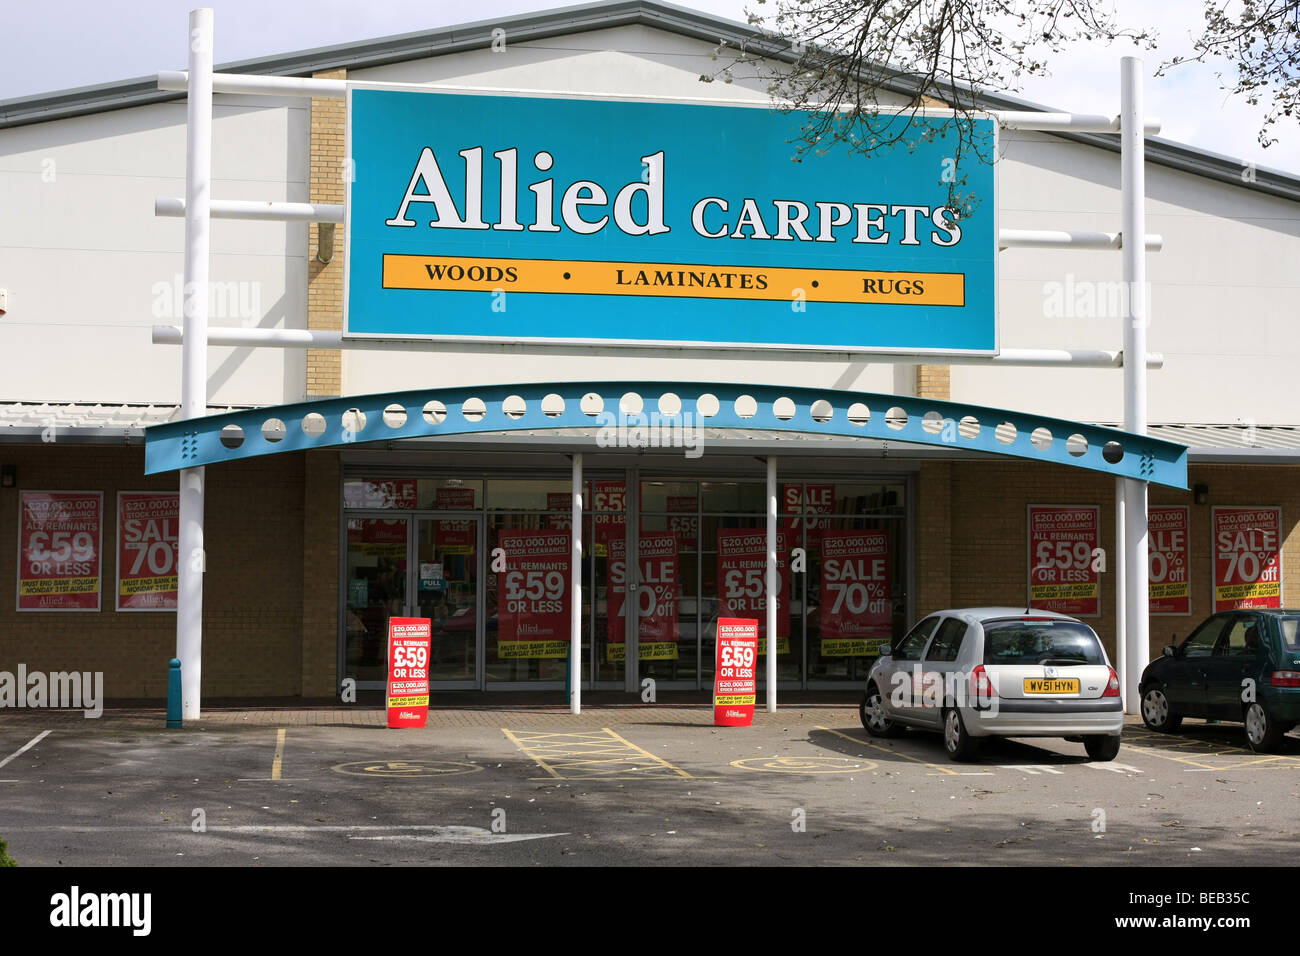 Allied Carpets Flooring Store and sign - Stock Image